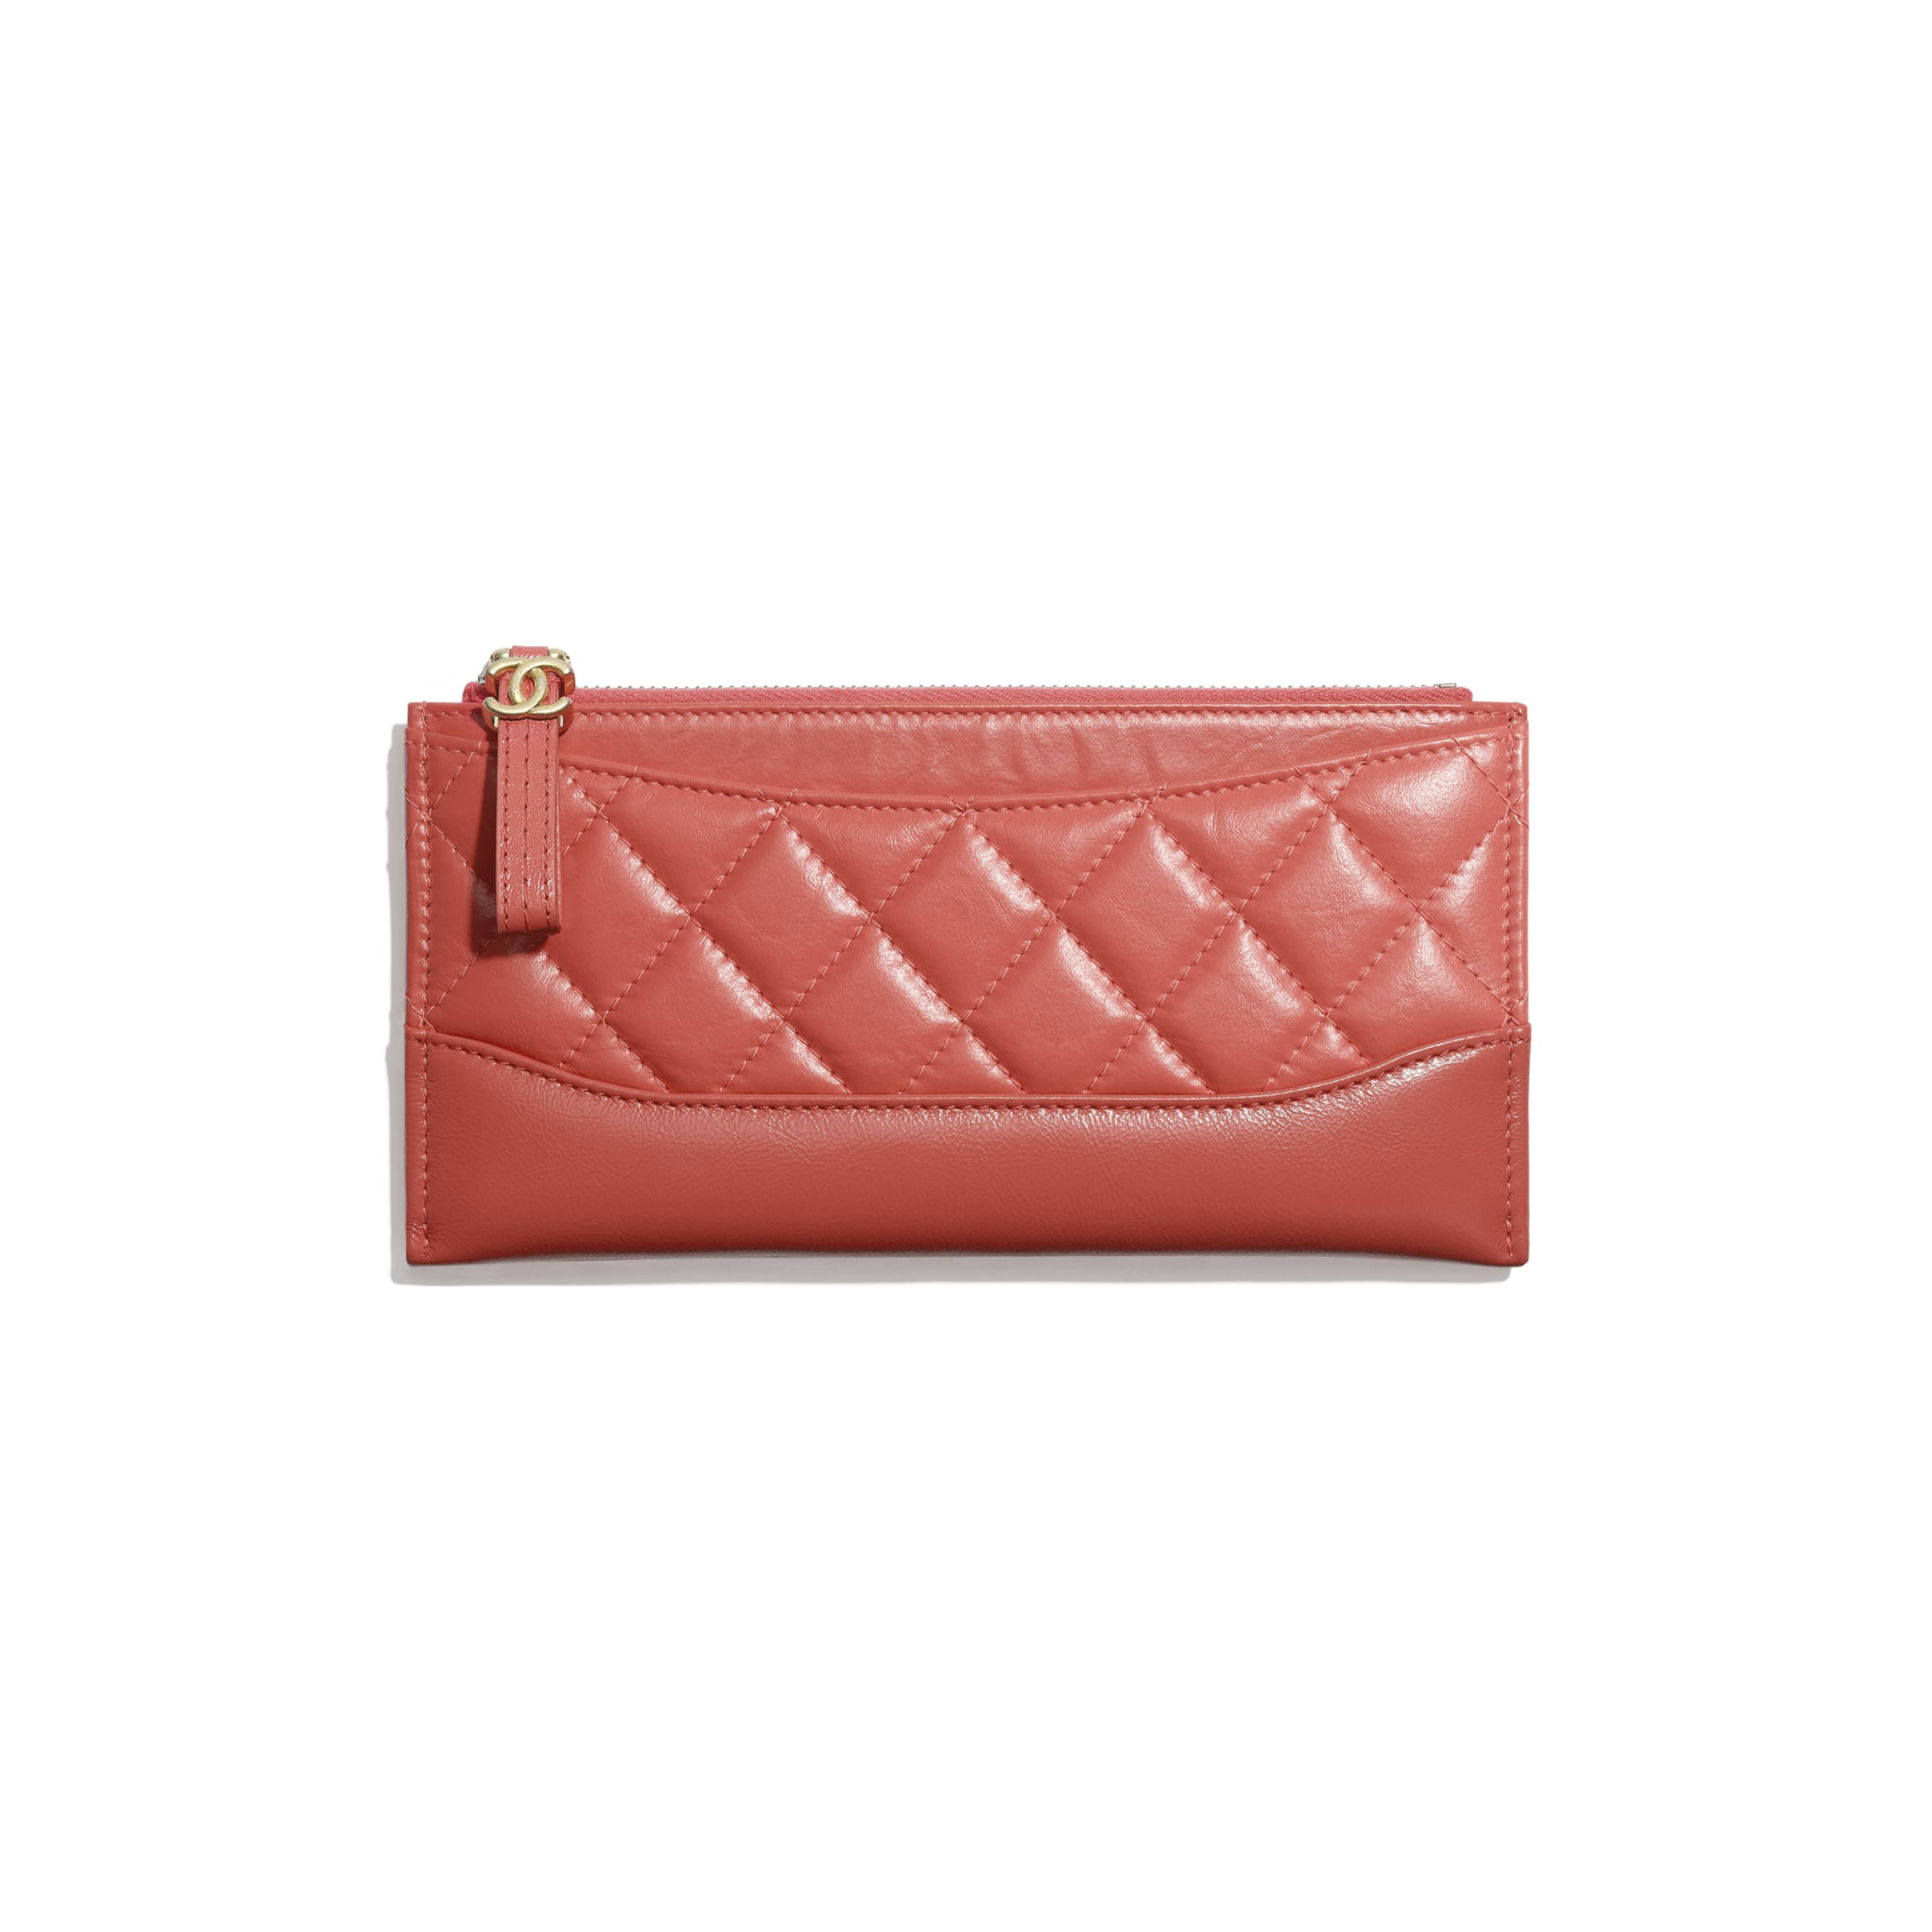 Pouch - Coral - Aged Calfskin, Smooth Calfskin, Gold-Tone, Silver-Tone & Ruthenium-Finish Metal - CHANEL - Default view - see standard sized version